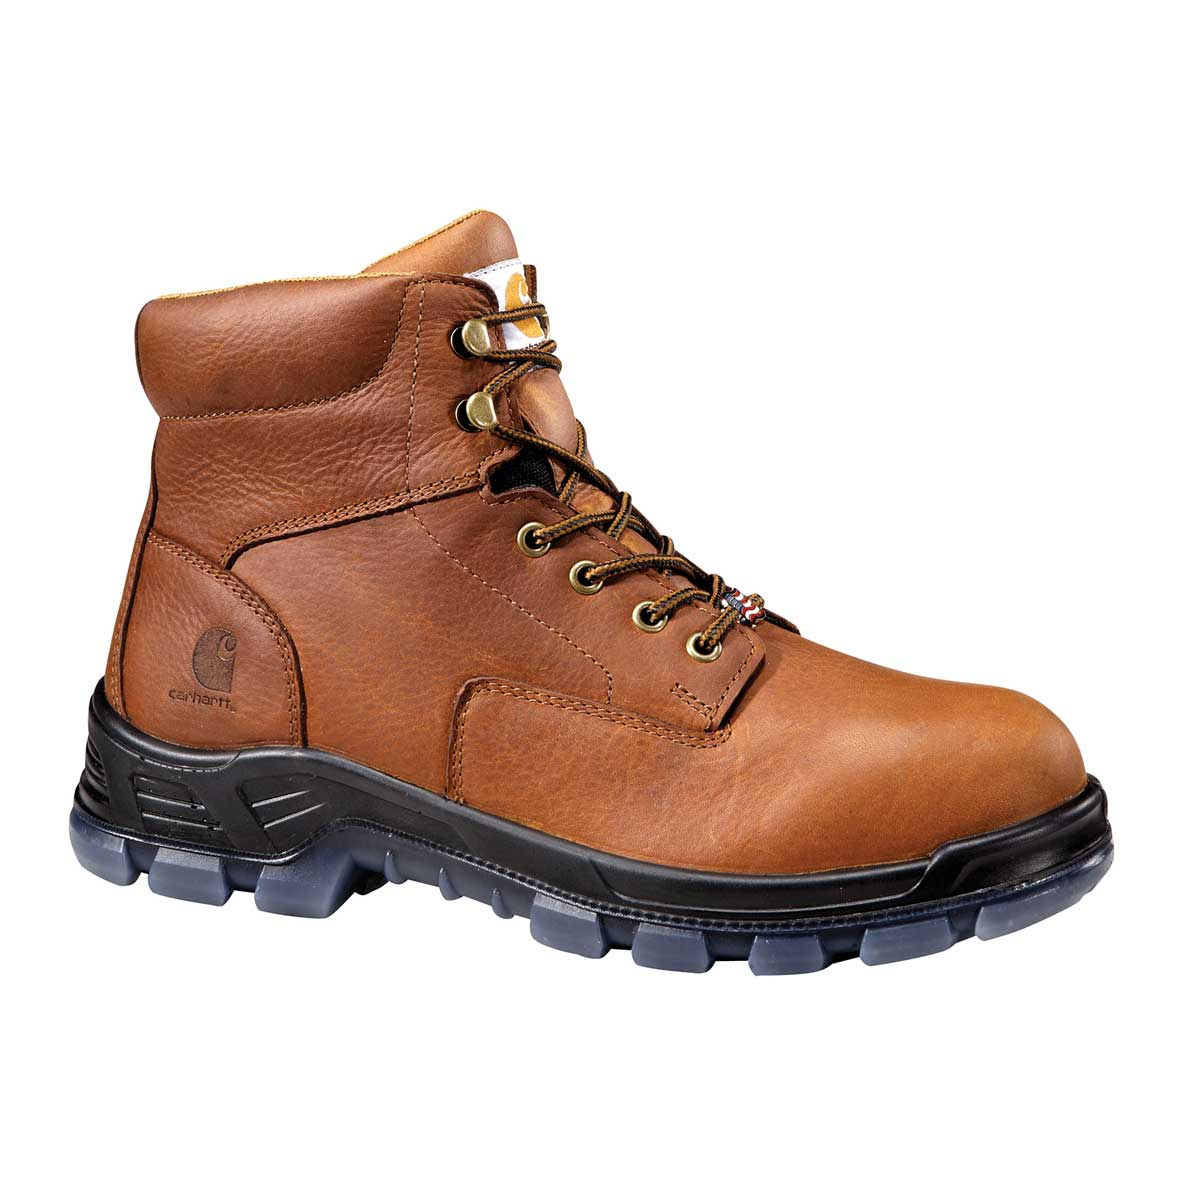 "Carhartt 6"" Plain Toe Work Boot"